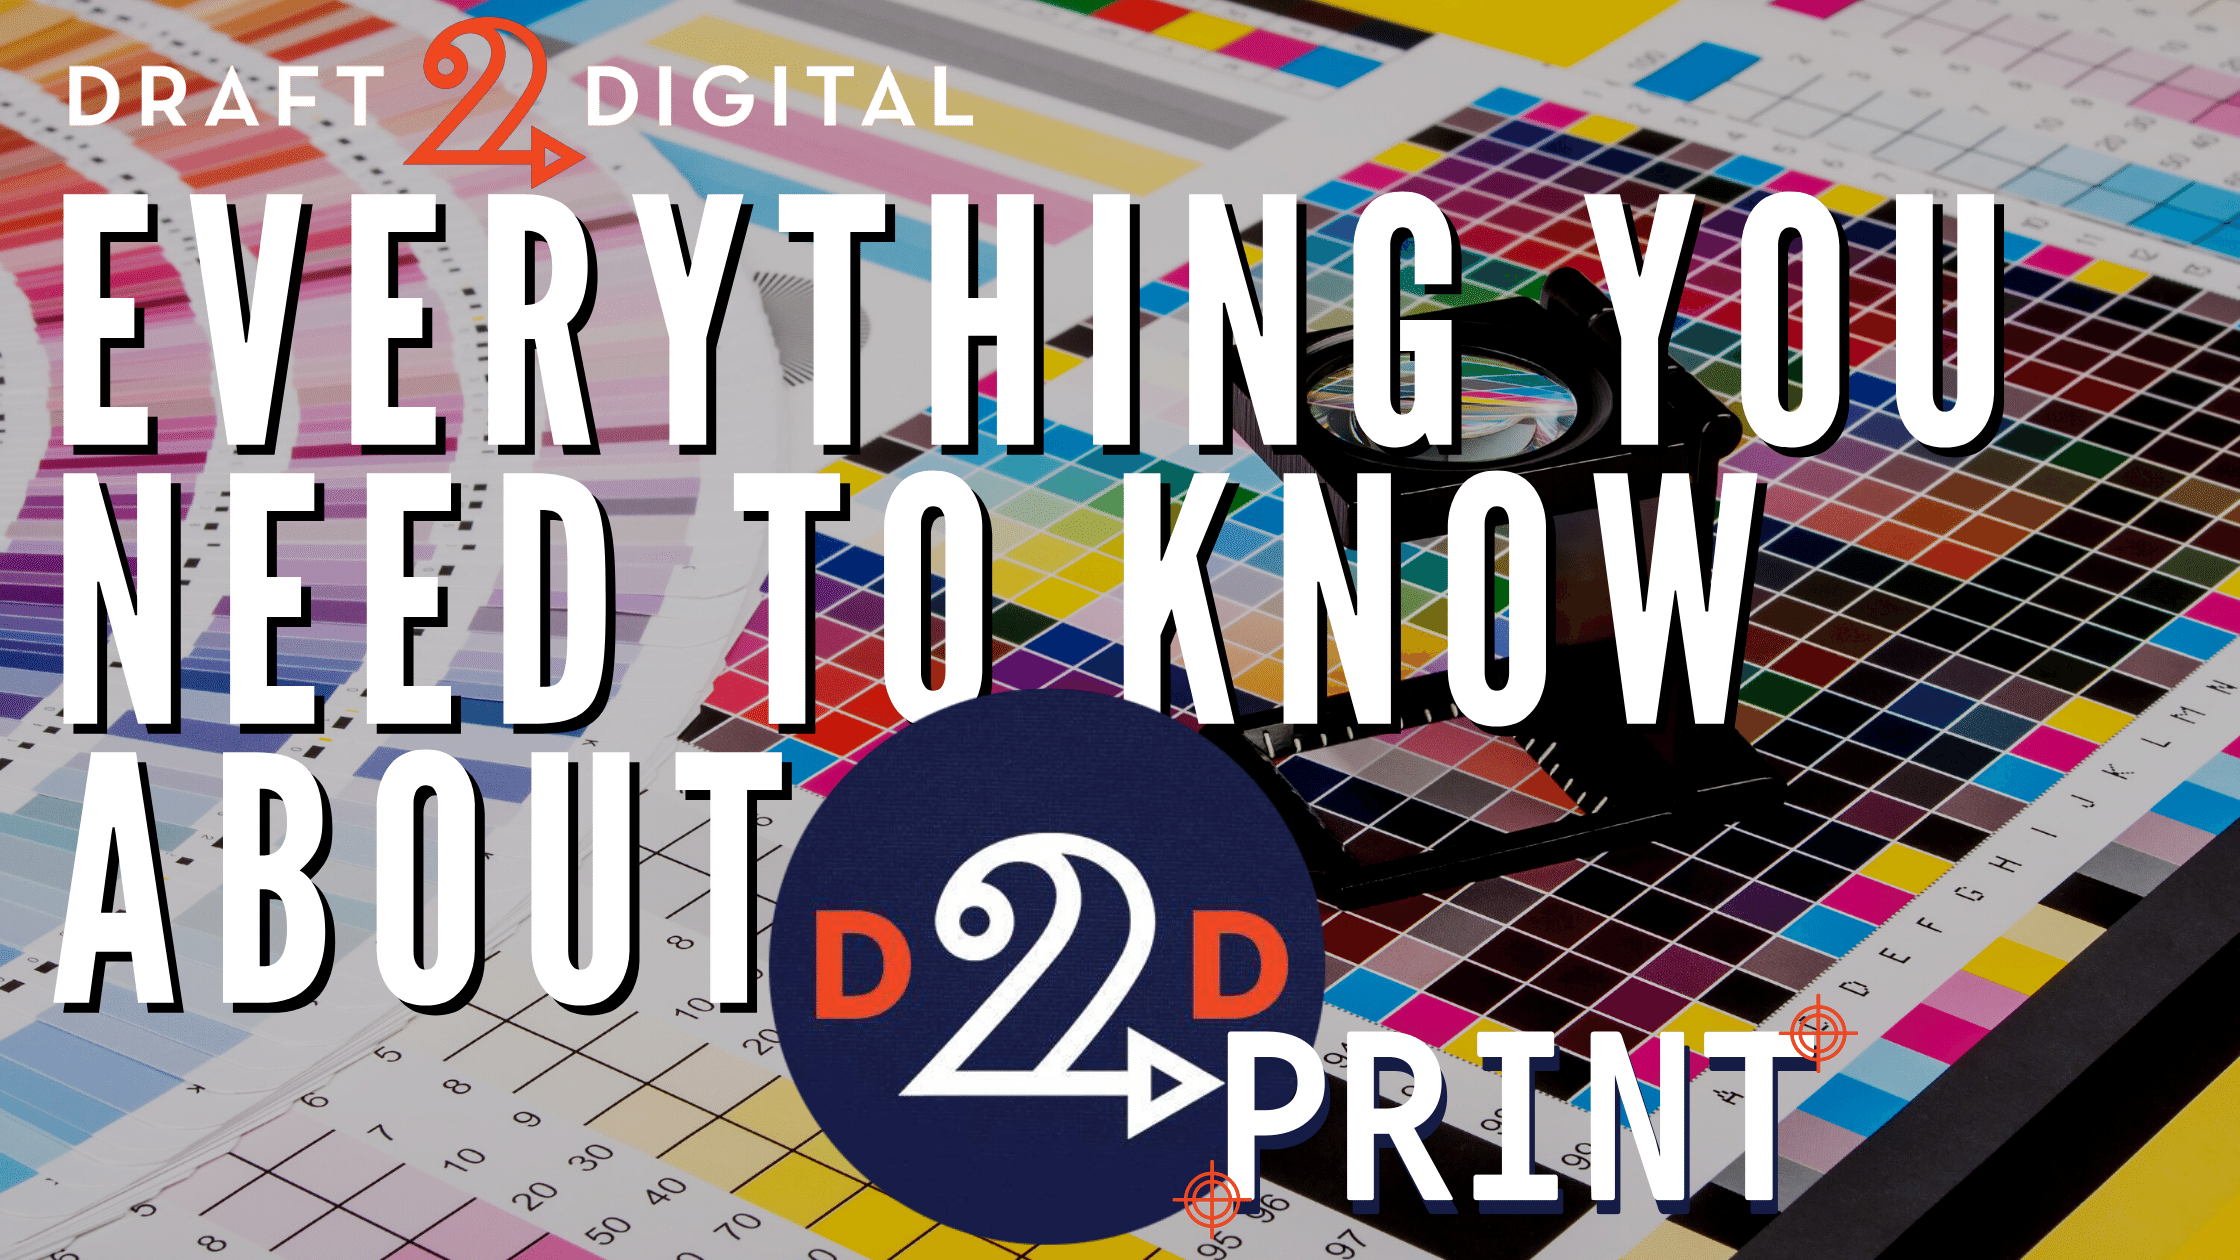 Everything you need to know about D2D Print